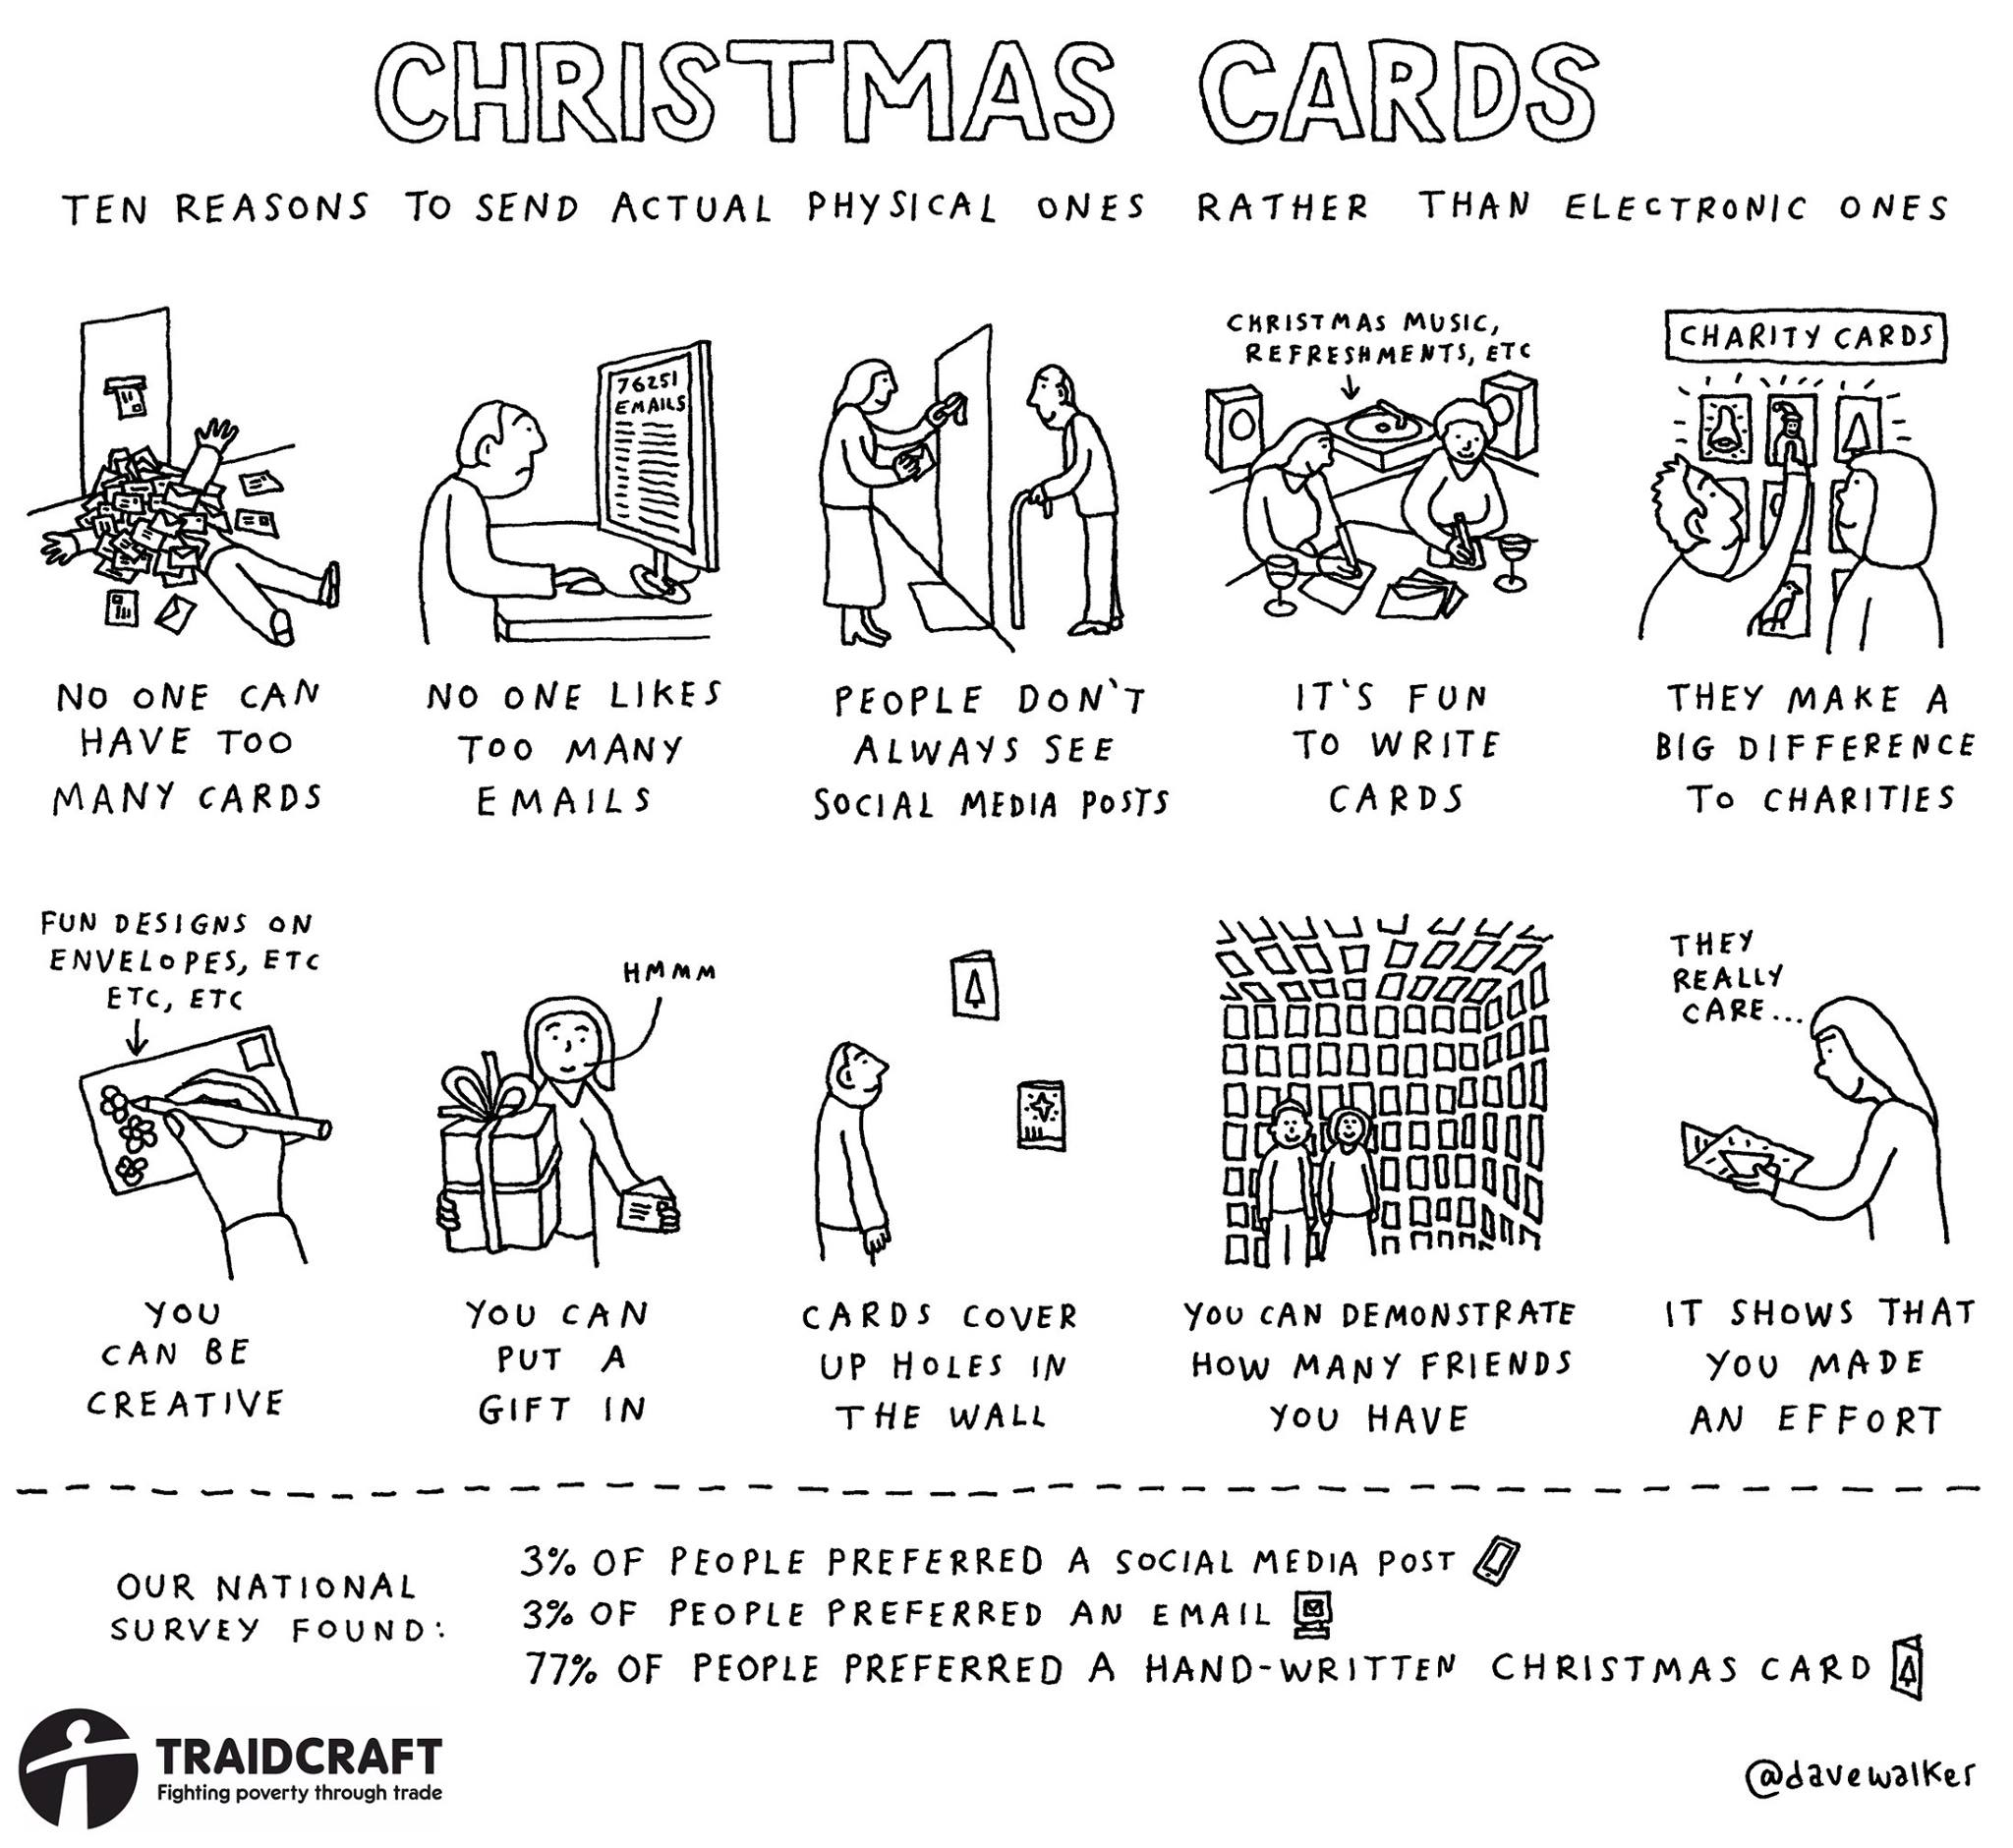 10 Reasons to send handwritten Christmas cards